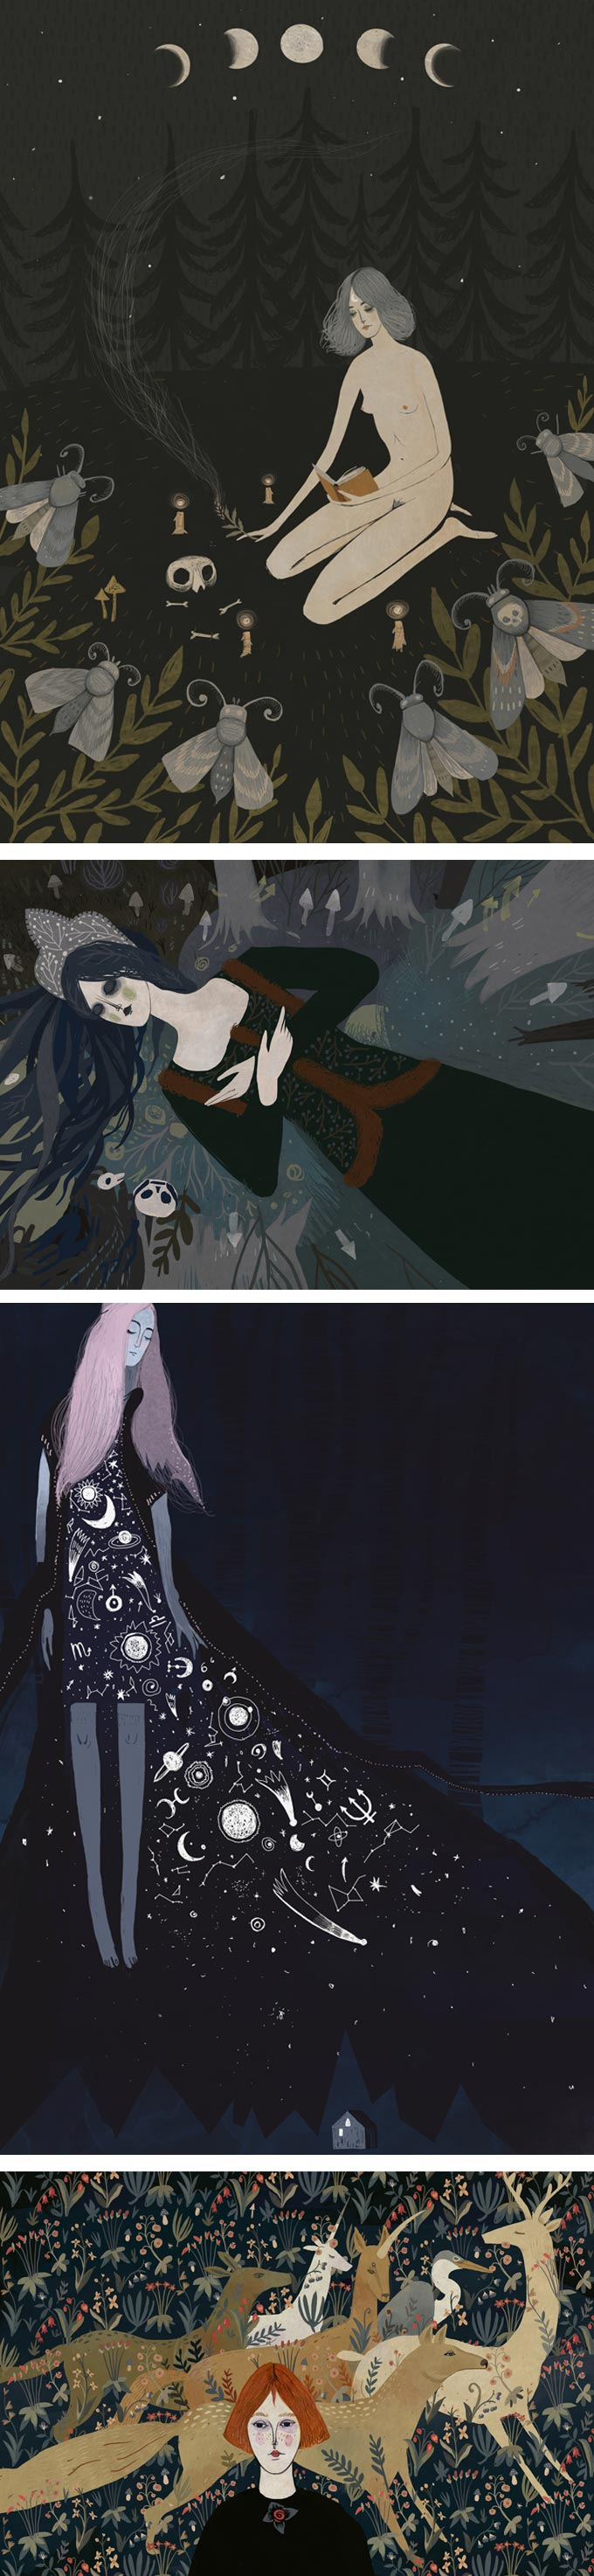 Illustrations by Alexandra Dvornikova